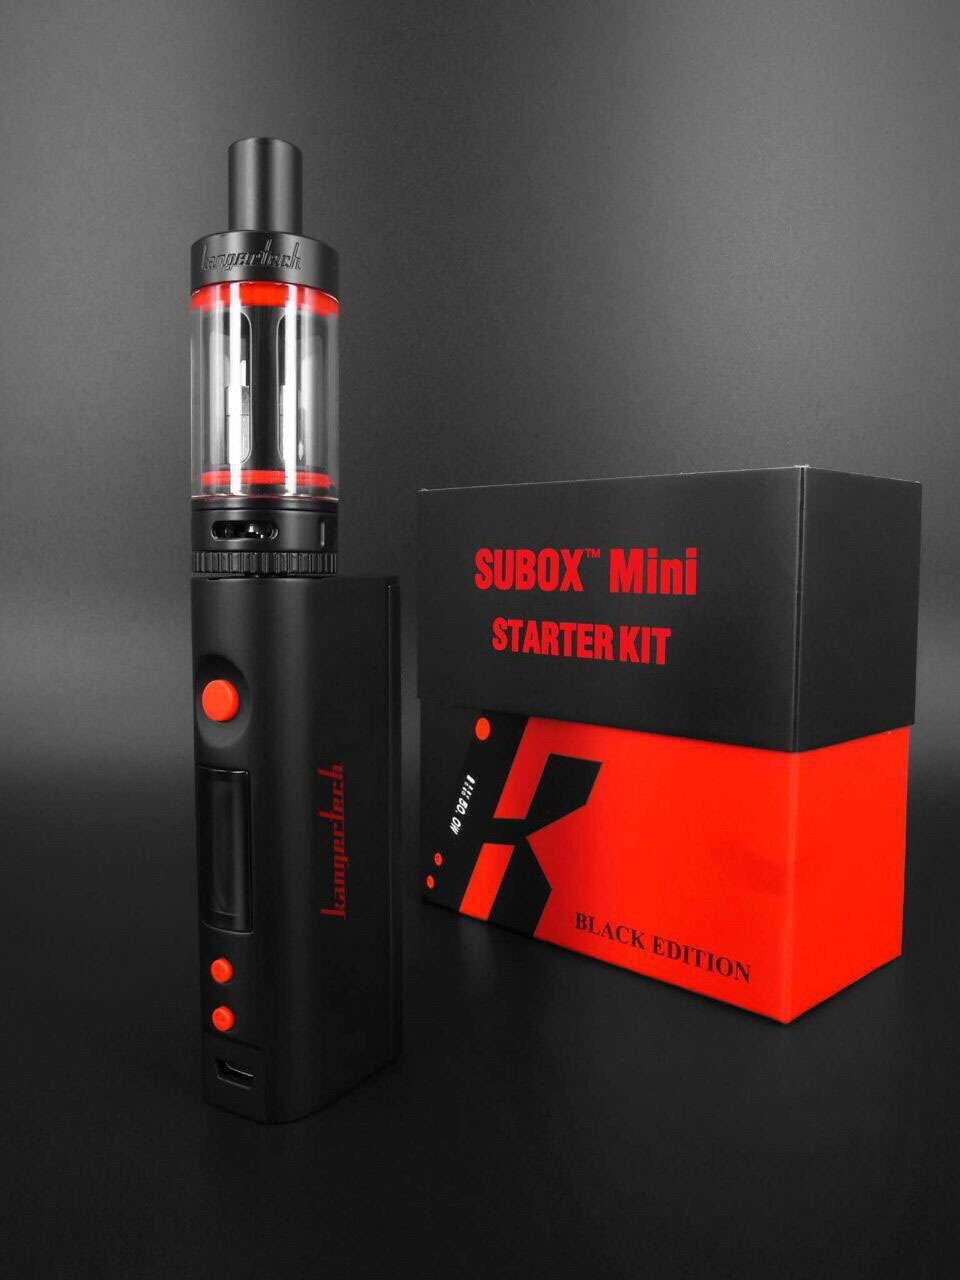 2015 wholesale Kanger Subox mini starter kit mini, subtank mini bell cap from CACUQ